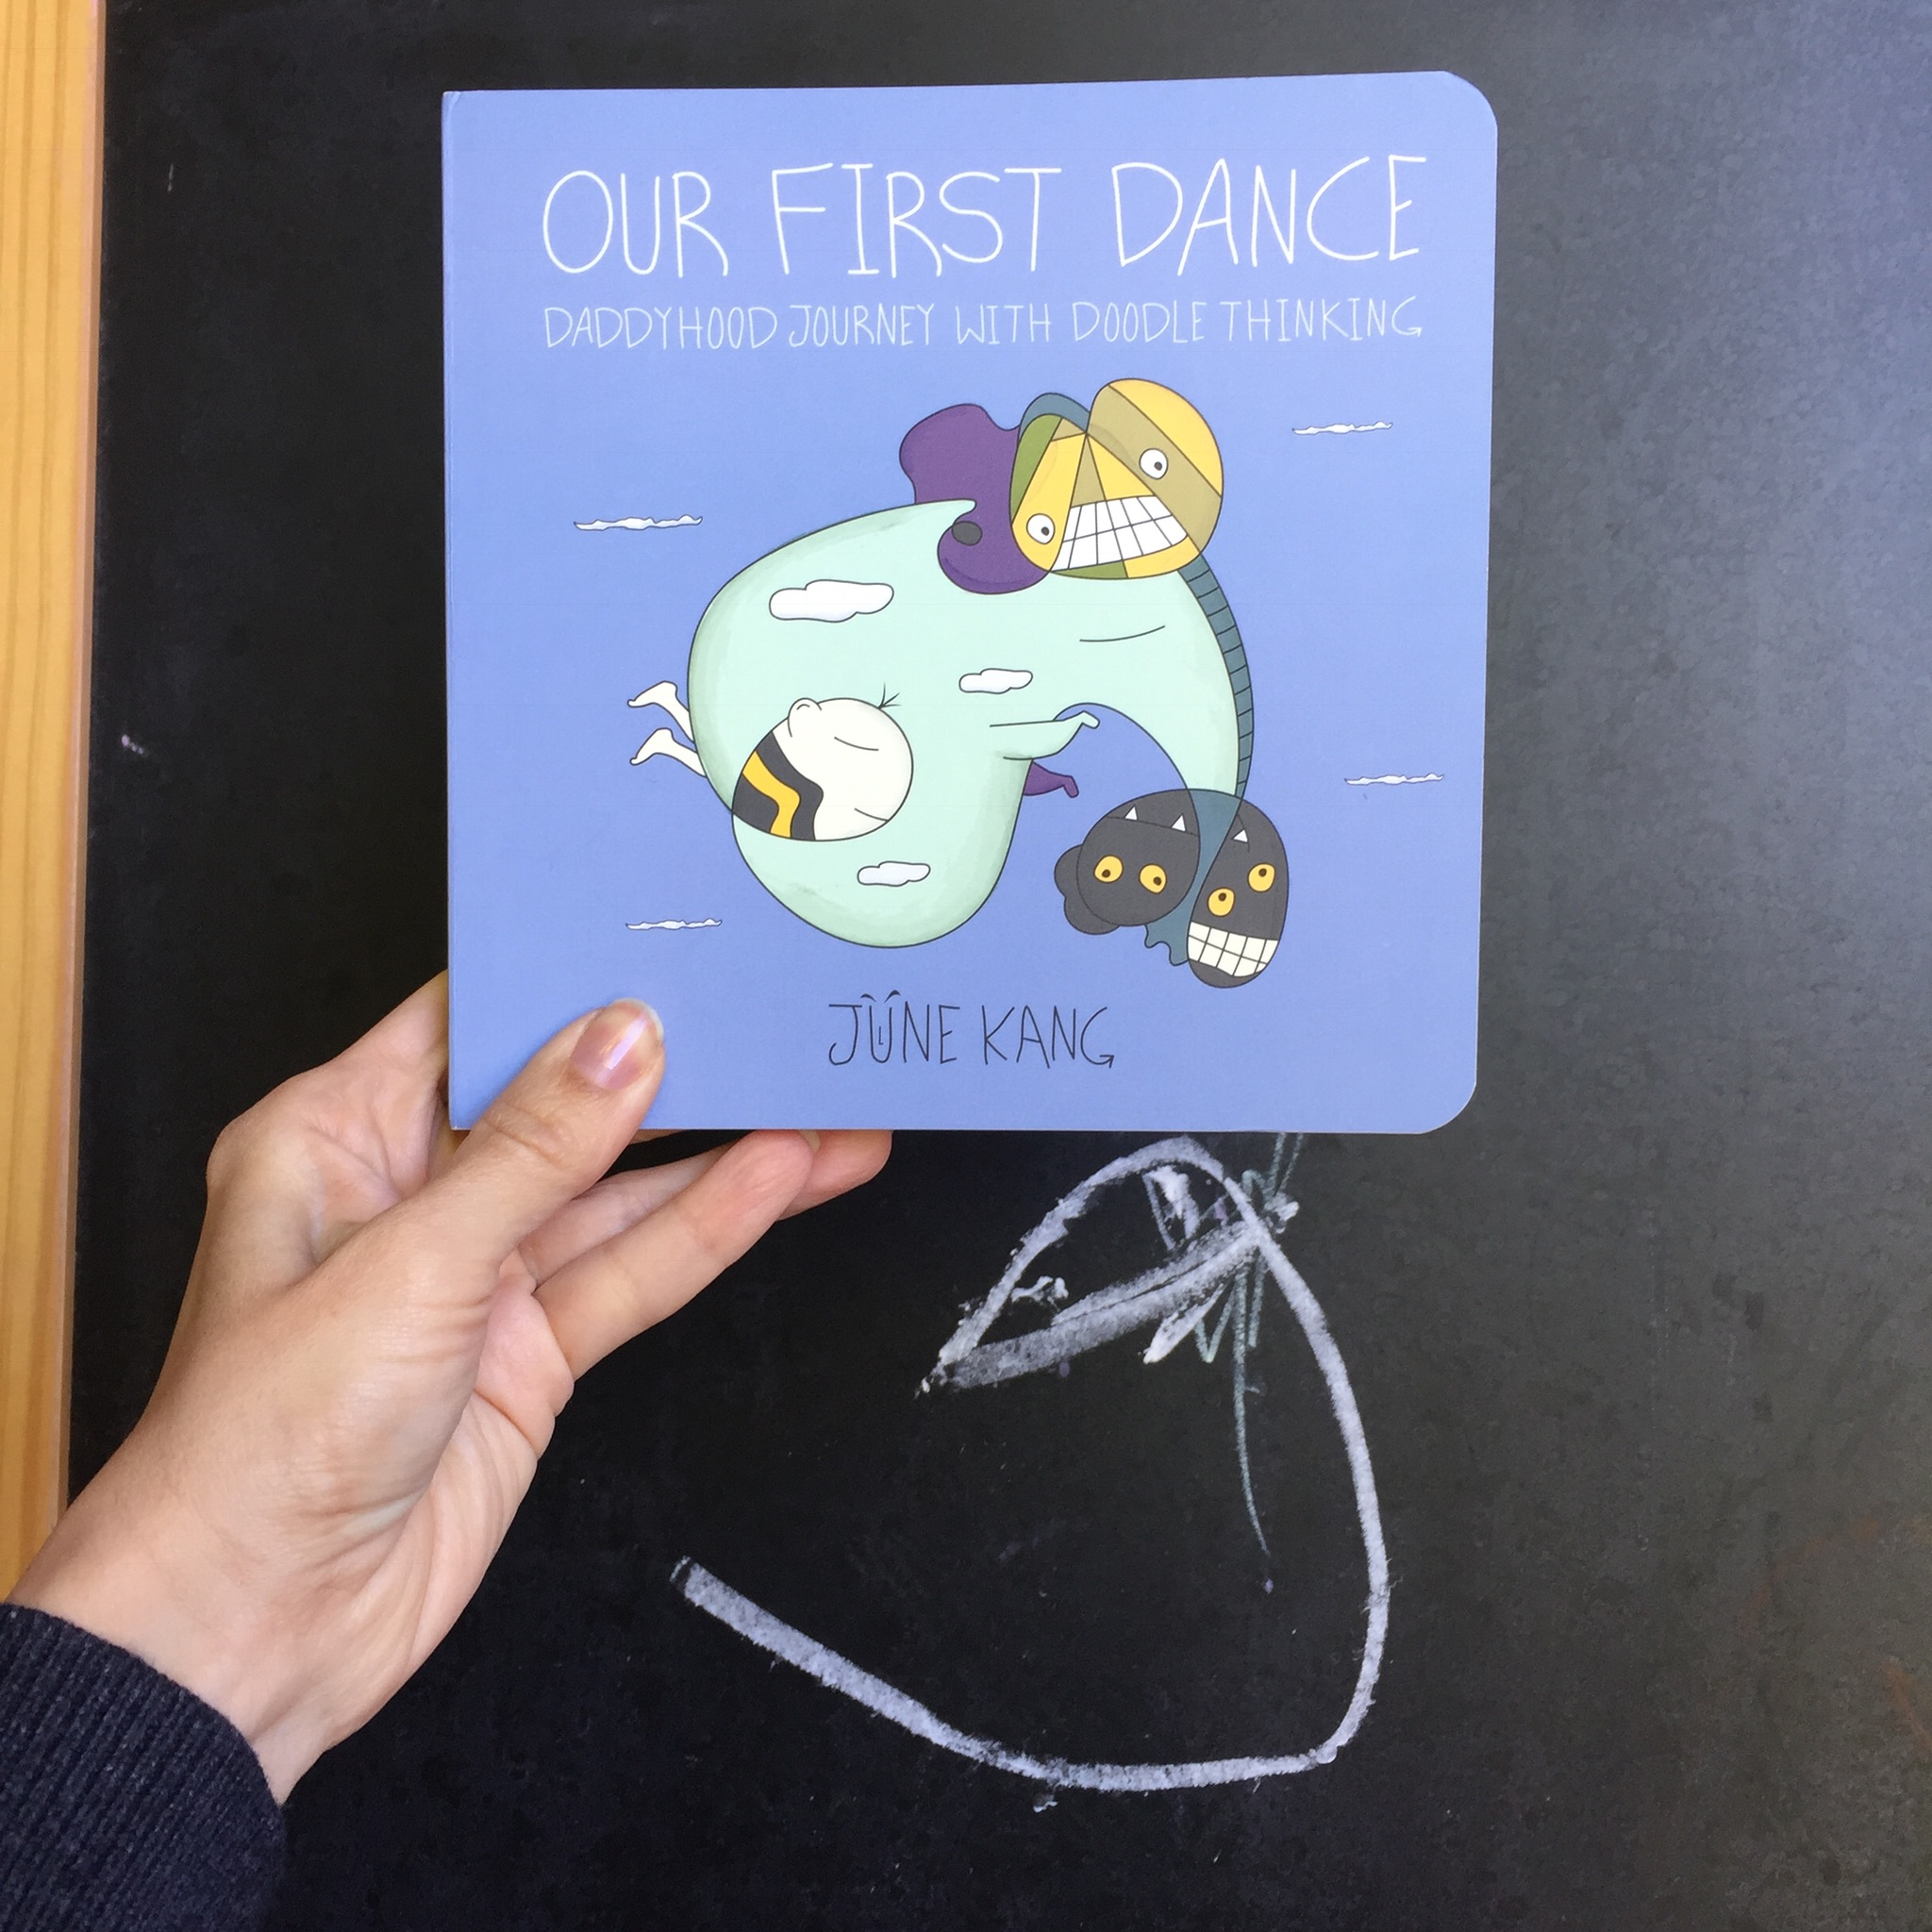 Review - Our First Dance - Daddyhood Journey with Doodle Thinking